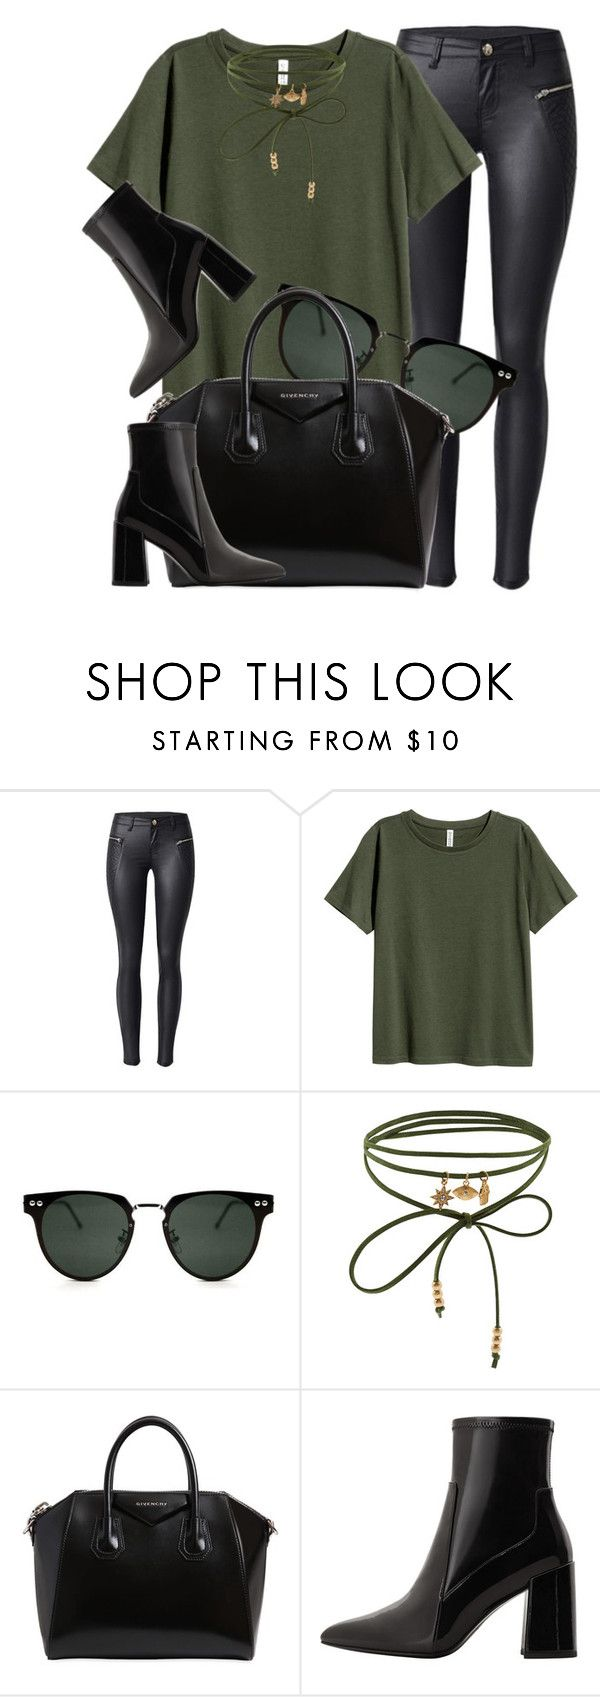 """Green & Black"" by smartbuyglasses-uk ❤ liked on Polyvore featuring Accessorize, Givenchy, MANGO, black and GREEN"